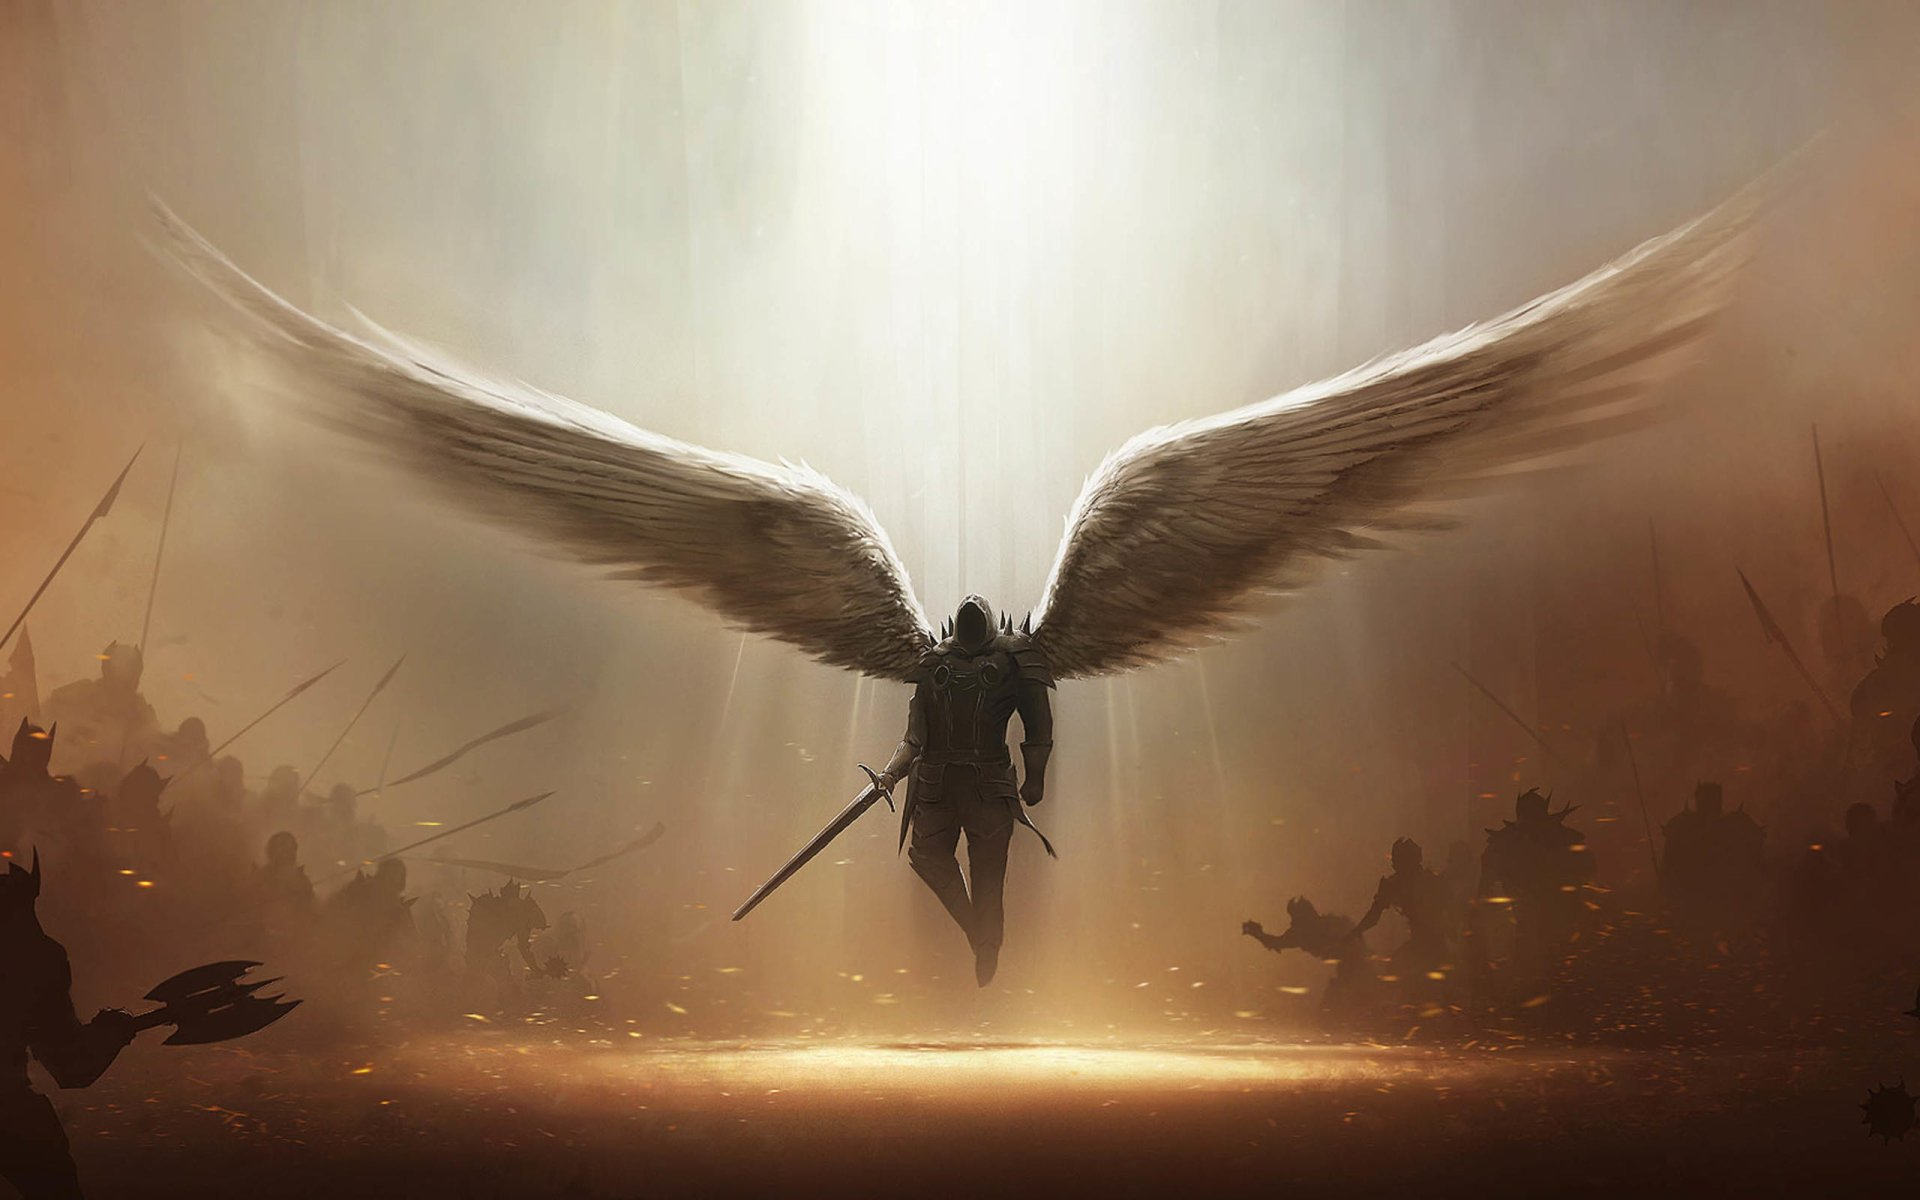 Video Game - Diablo III  Angel Tyrael (Diablo III) Dark Wings Demon Sword Weapon Angel Warrior Wallpaper